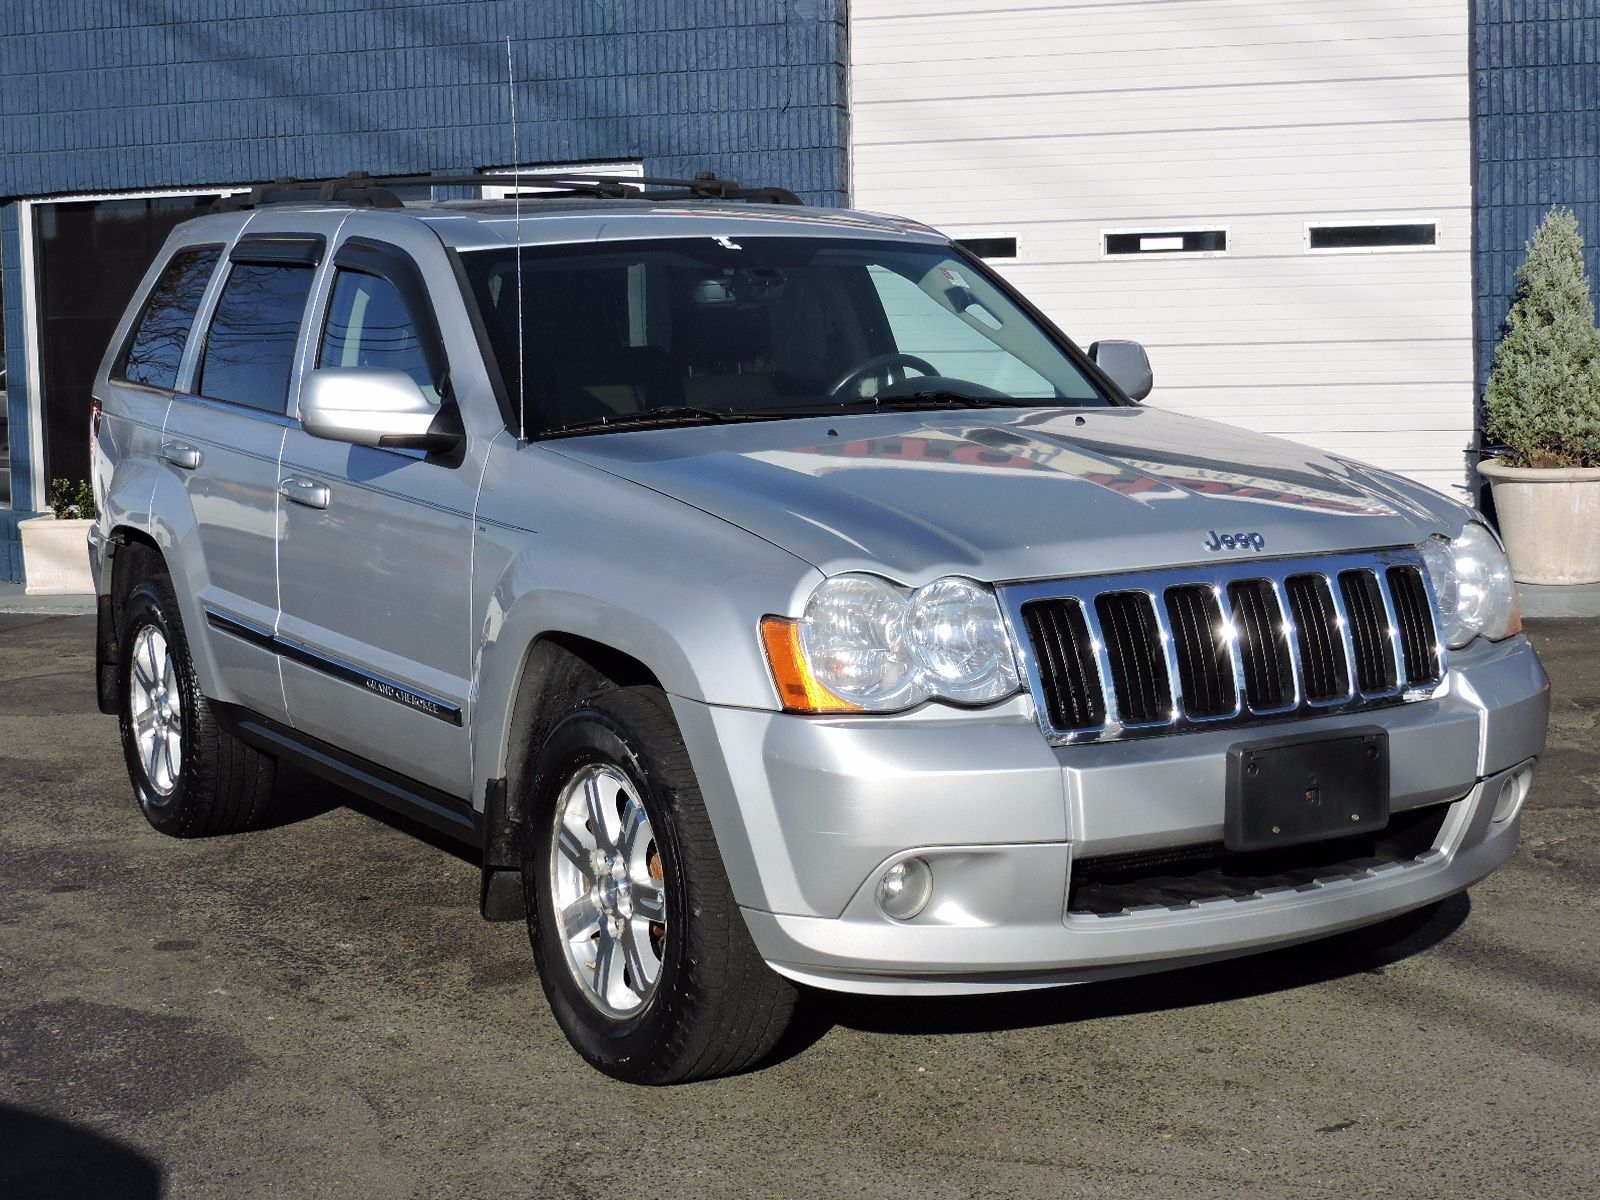 2008 Jeep Grand Cherokee Limited - Hemi - All Wheel Drive - Navigation